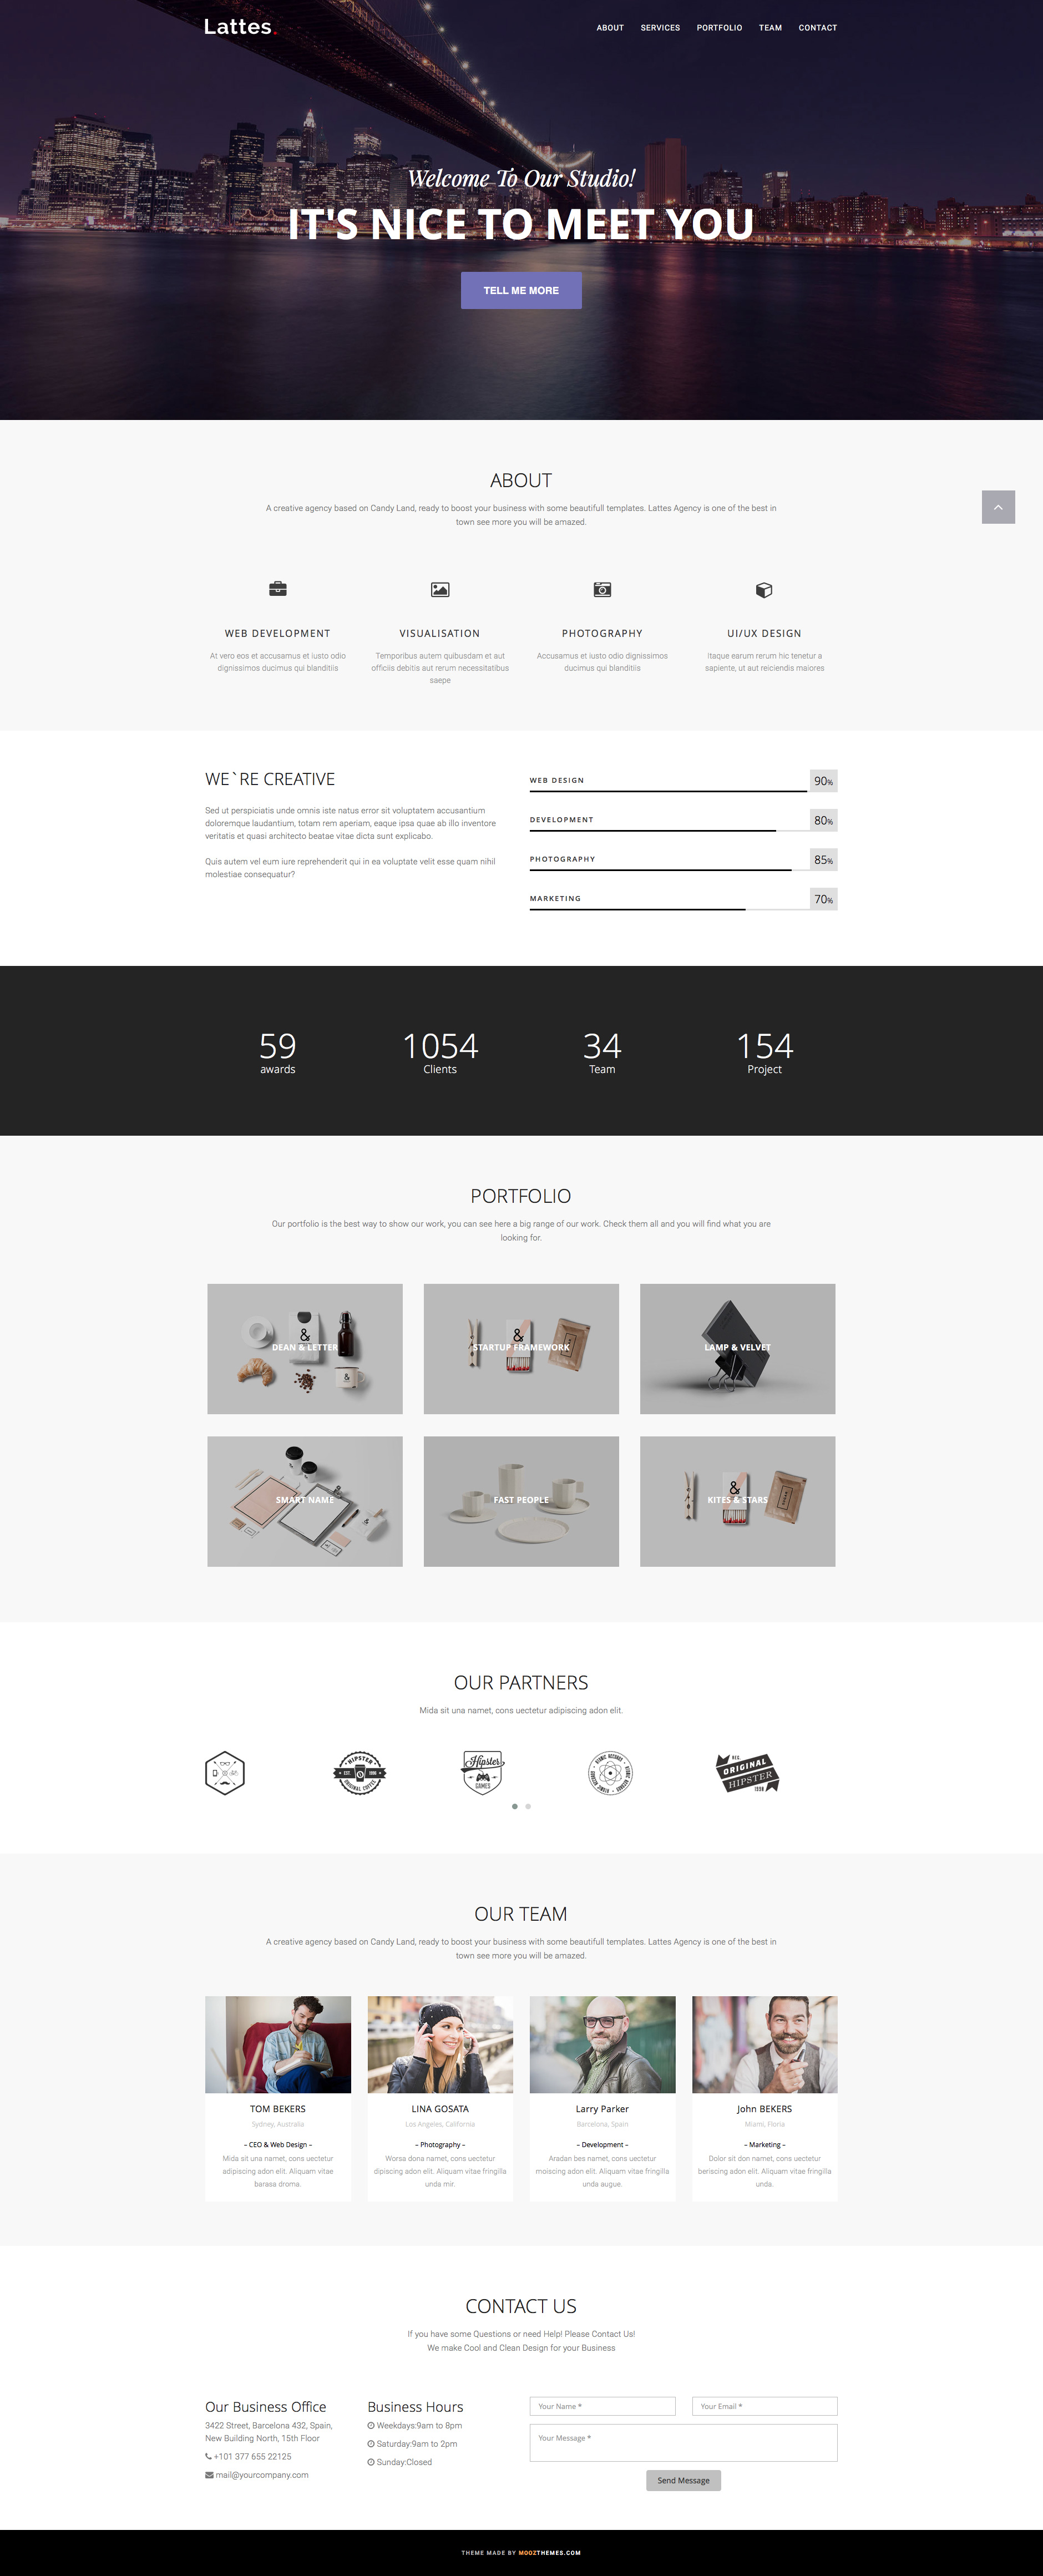 Lattes is a clean and elegant free responsive HTML5 Bootstrap multipurpose website template for businesses, creatives, and agencies. It features fully responsive design, responsive navigation, clean HTML markup, portfolio grid and FontAwesome Icons.